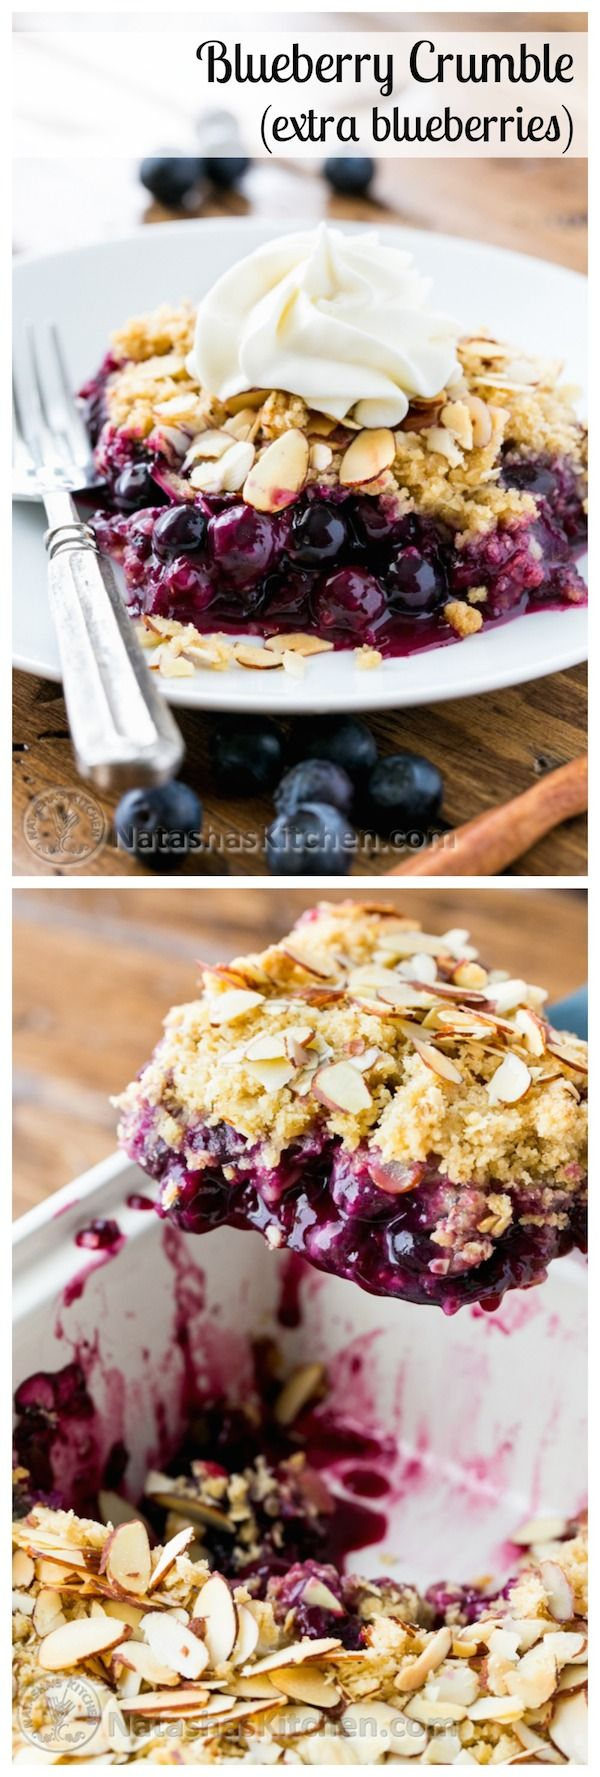 This blueberry crumble is a must-try recipe! Easy to make and absolutely delicious with layers of plump blueberries from @NatashasKitchen #giveaway #sponsored by #lecreuset